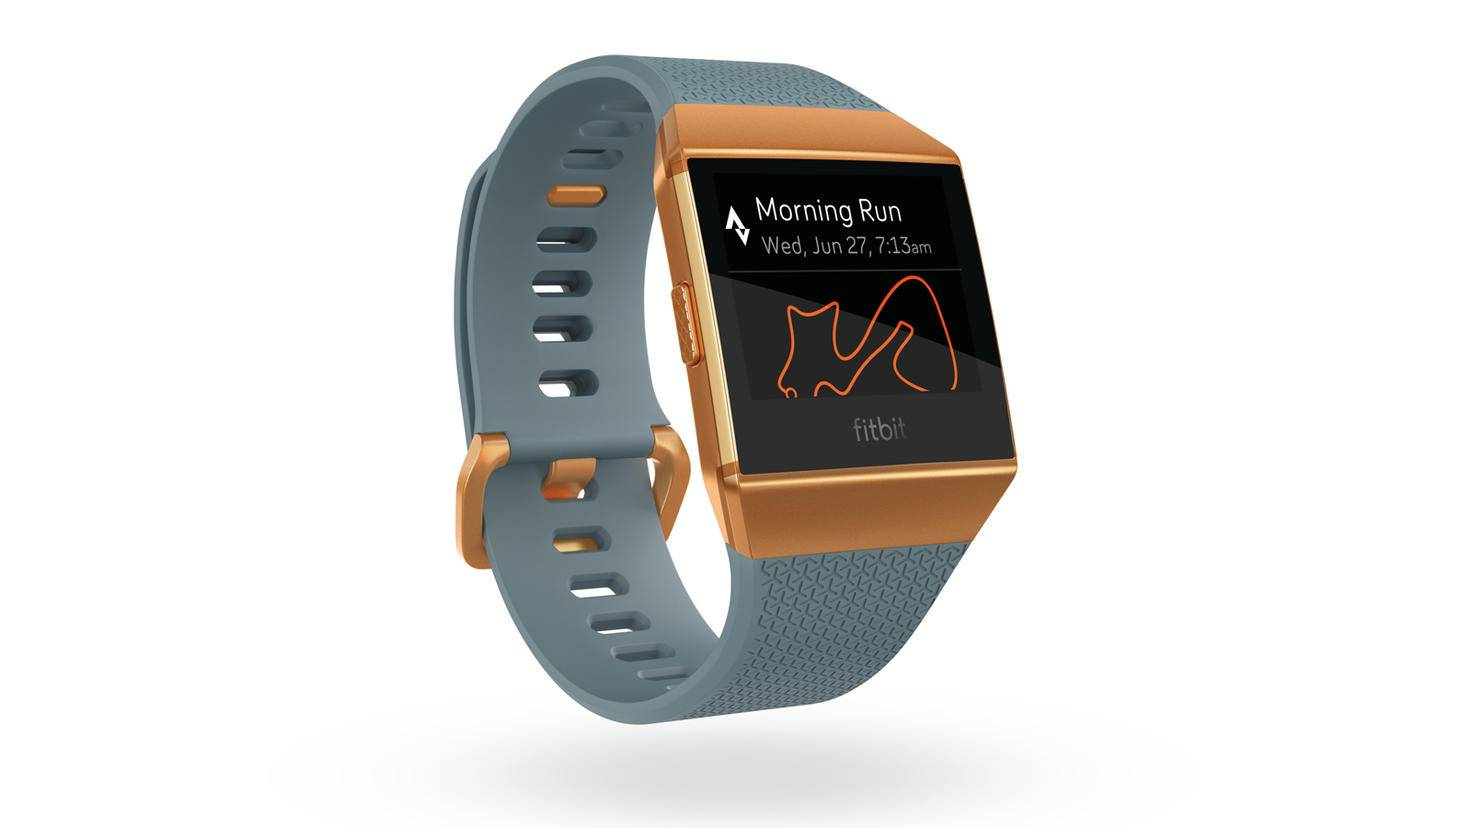 Fitbit_Ionic_3QTR_Burnt_Orange_Slate_Blue_Strava_Run